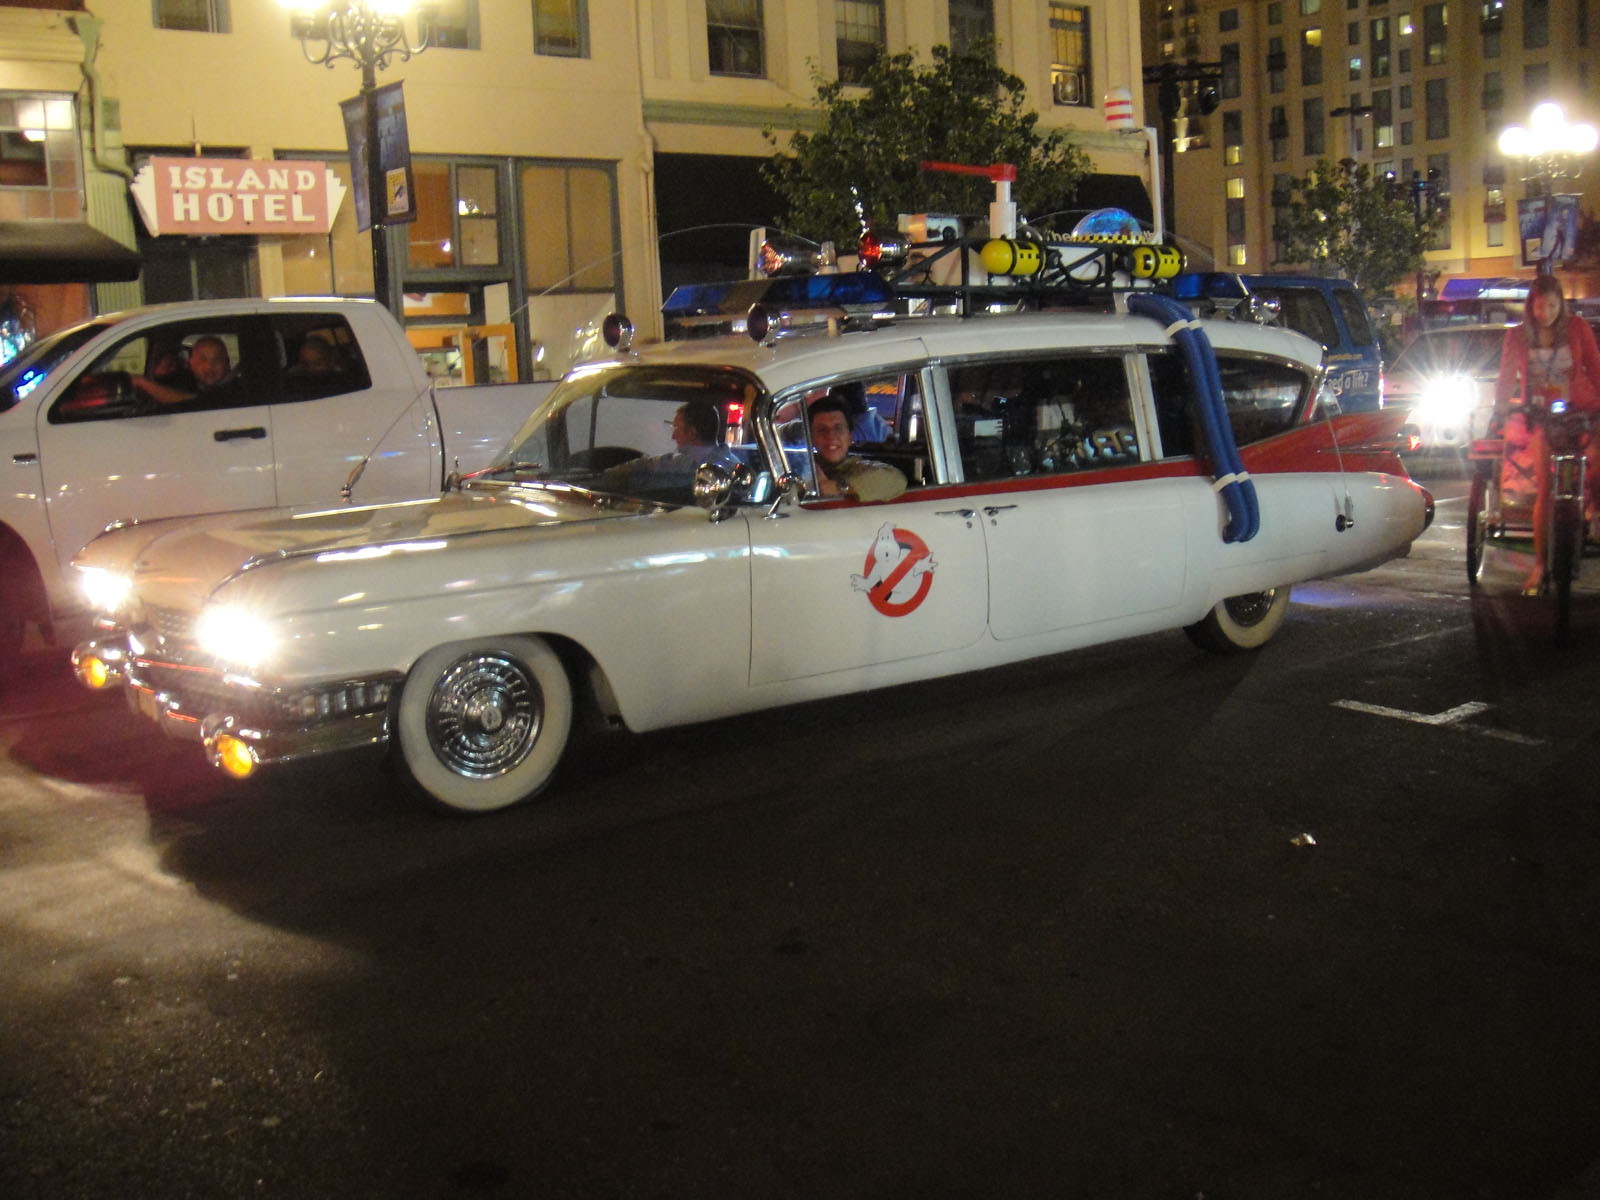 Ecto 1 in San Diego Legendary 1980s TV & Movie Vehicles That Sold For A Fortune At Auction